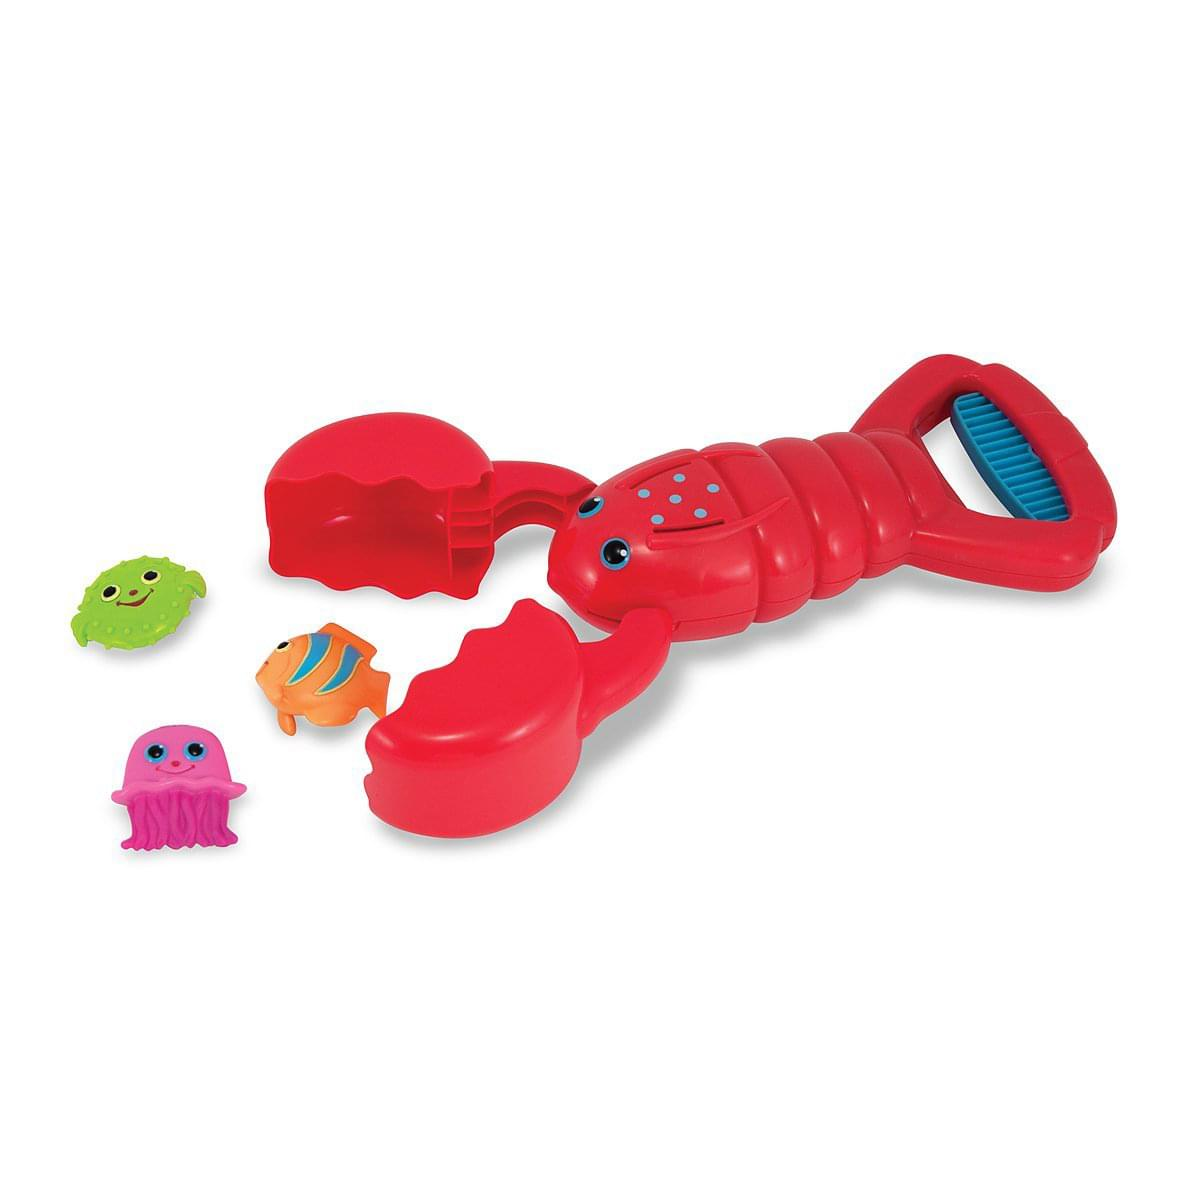 Louie Lobster Claw Catcher from Melissa & Doug